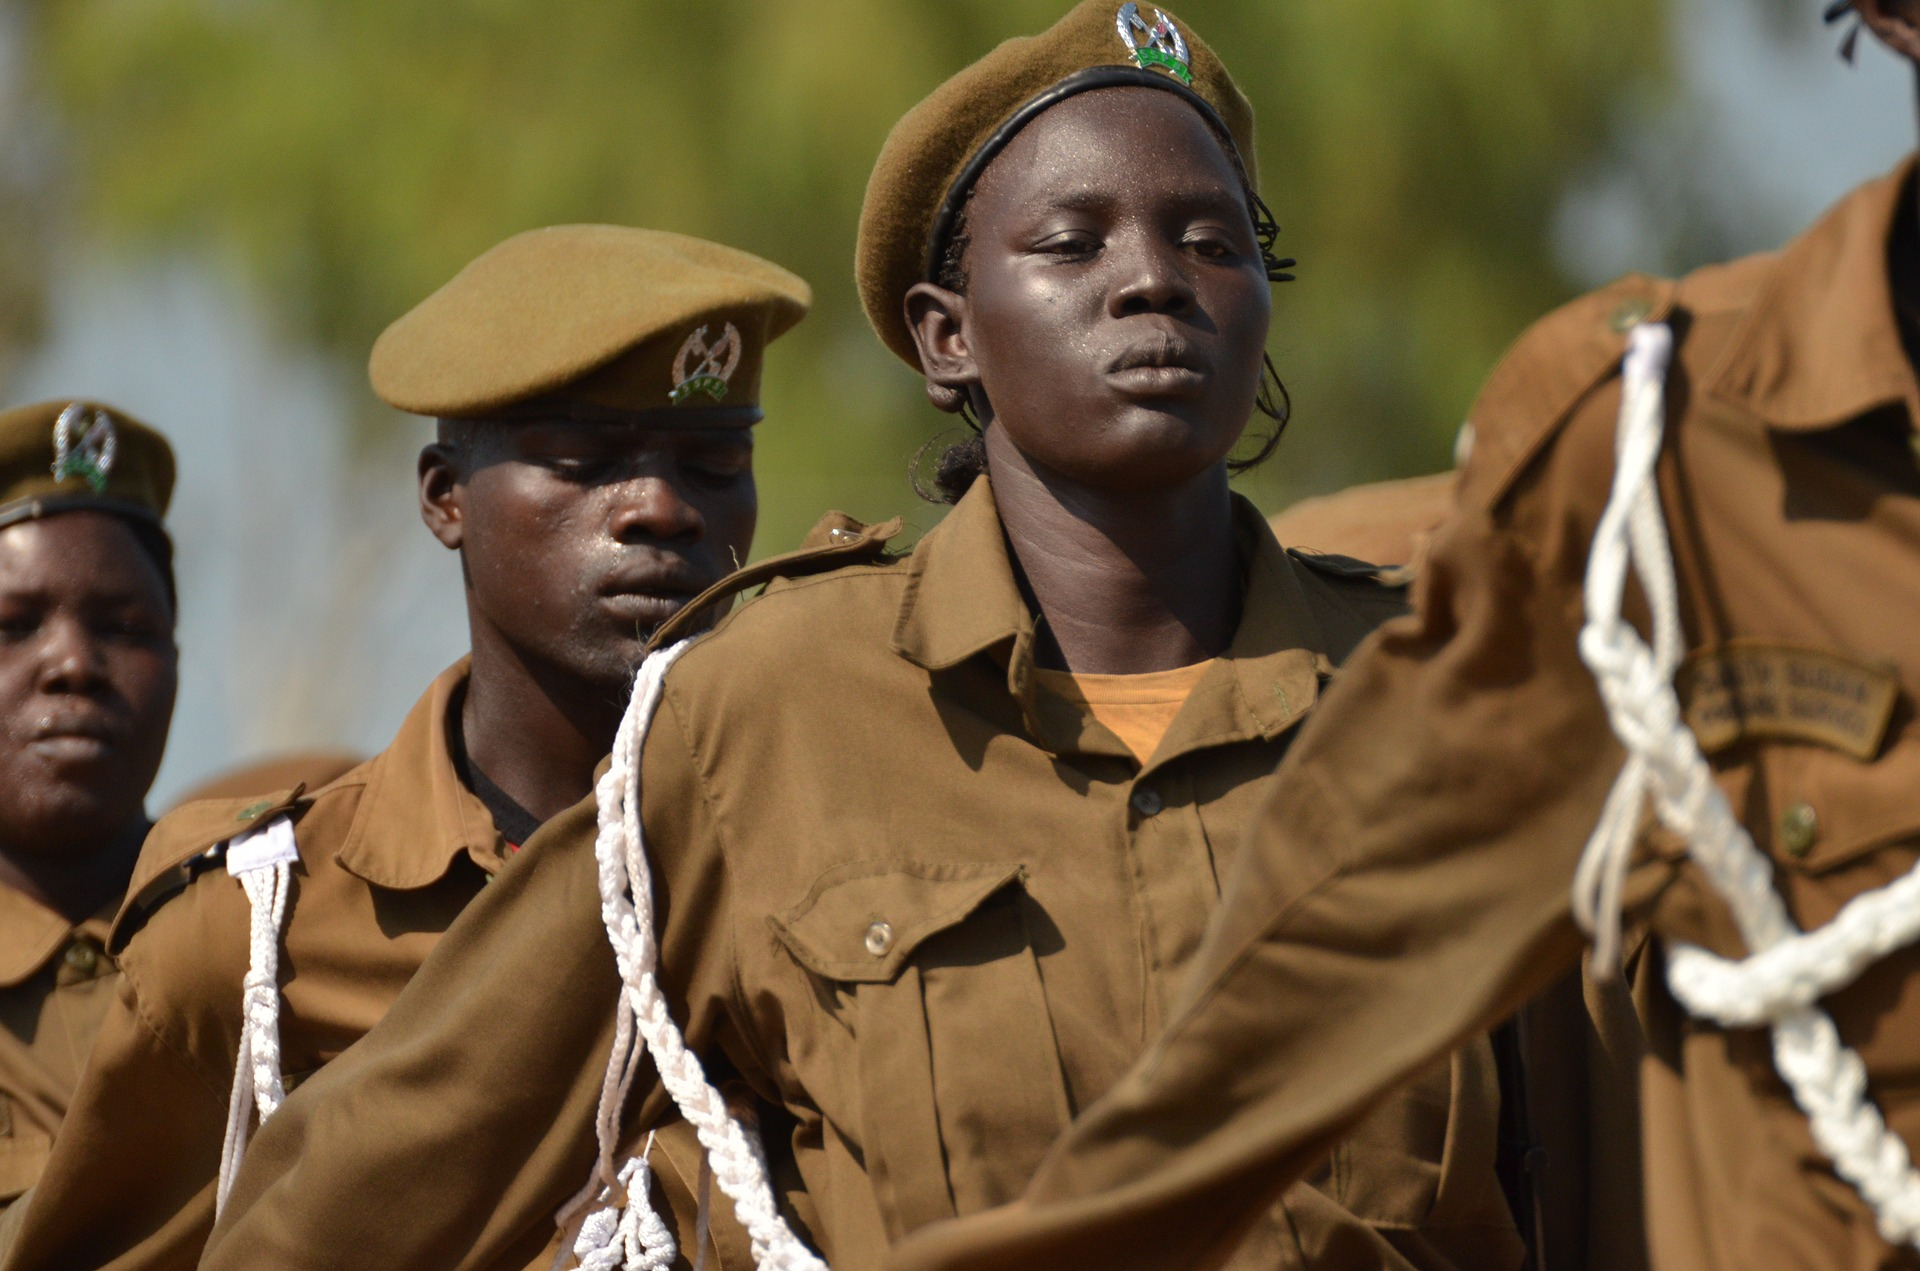 Change moves slowly in Sudan; persecution remains